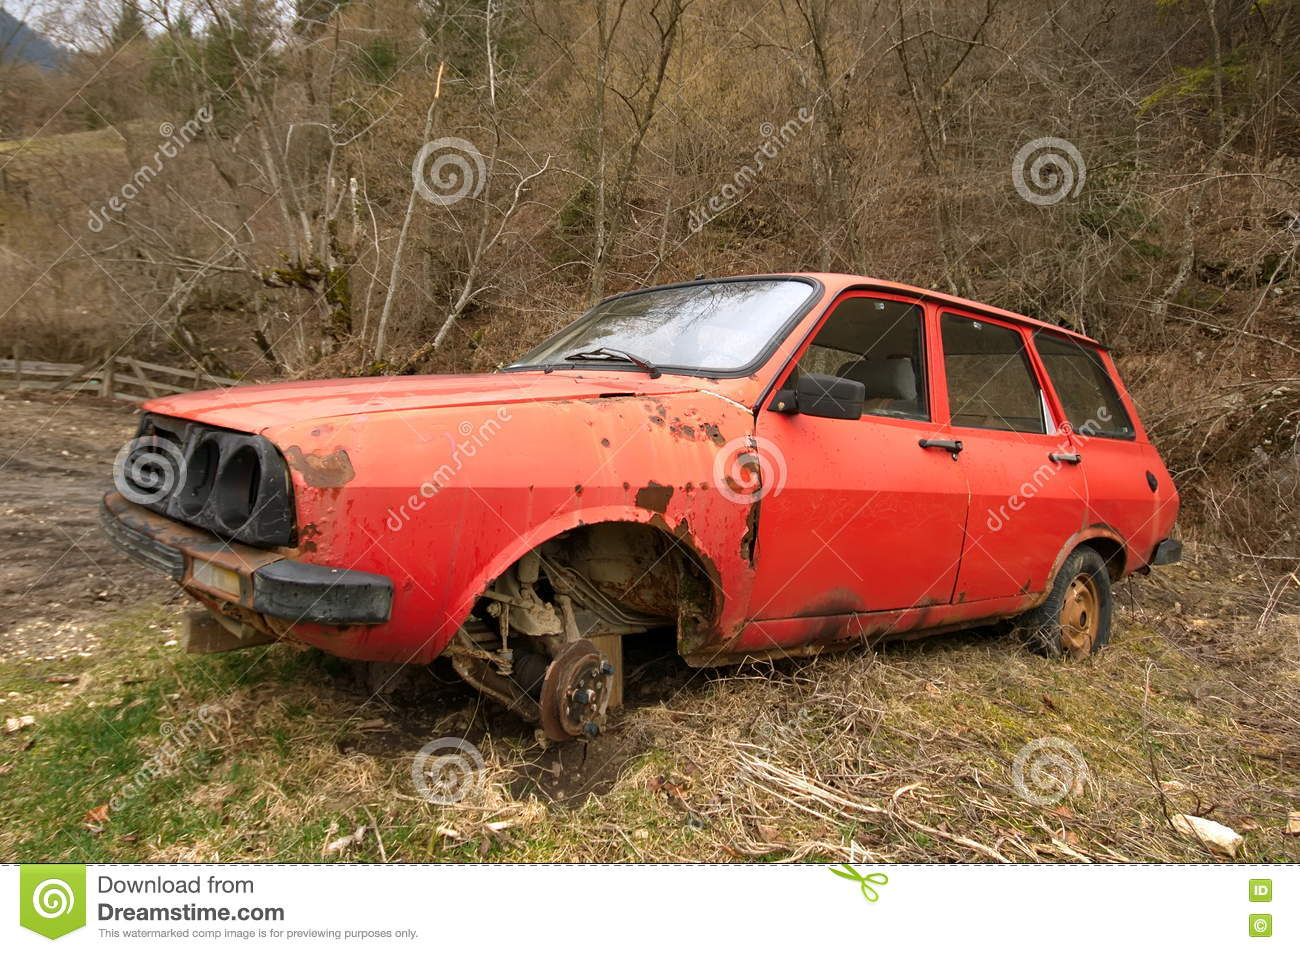 Old red junk car stock image. Image of sport, hobby, garbage - 73411135